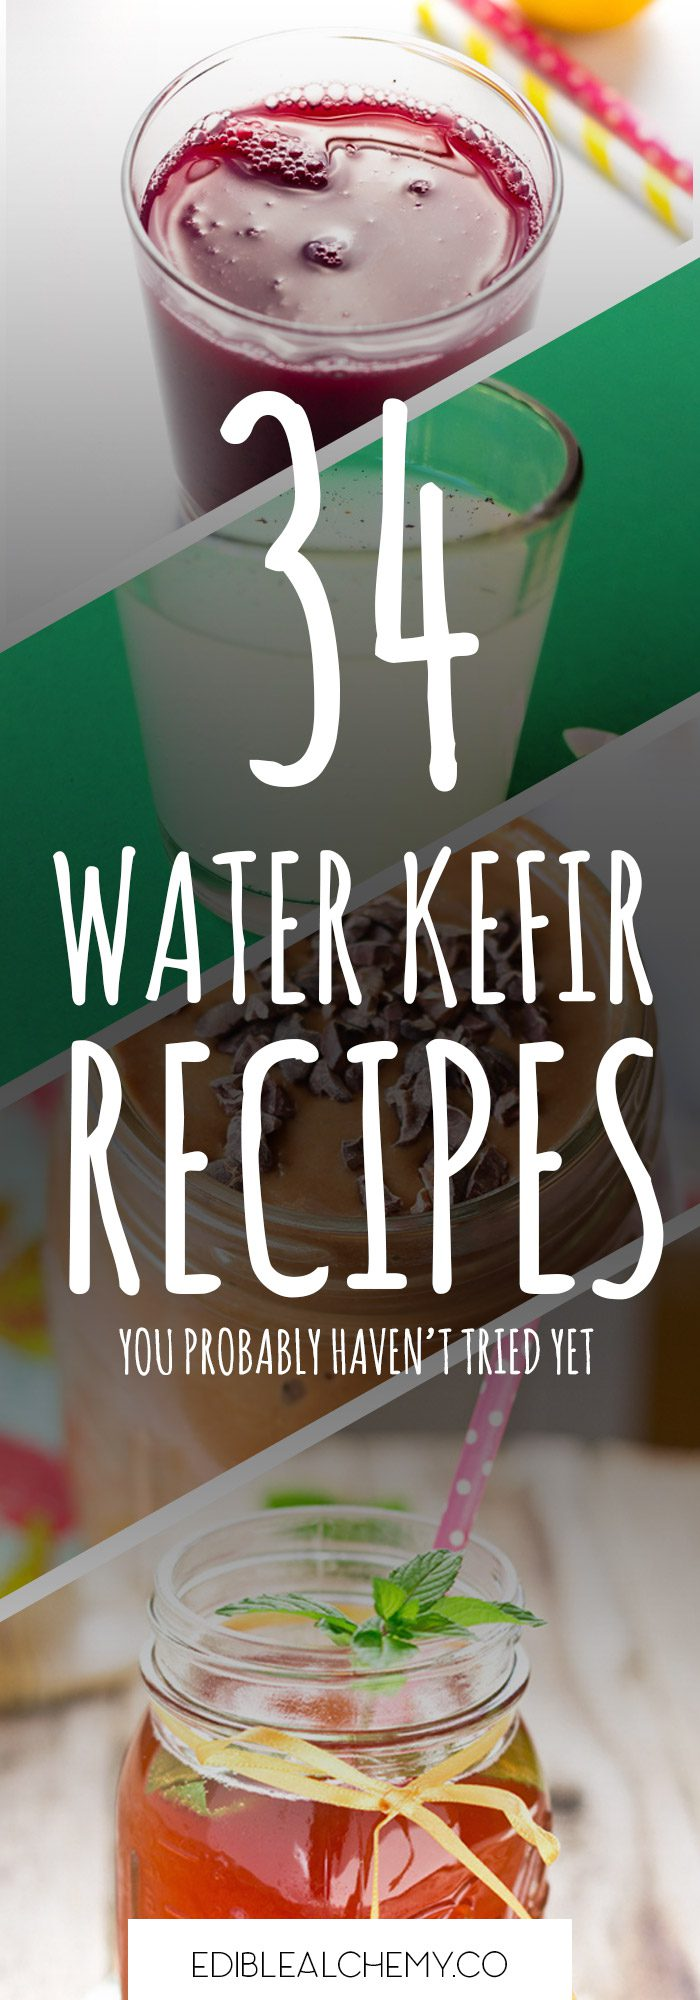 34 water kefir recipes